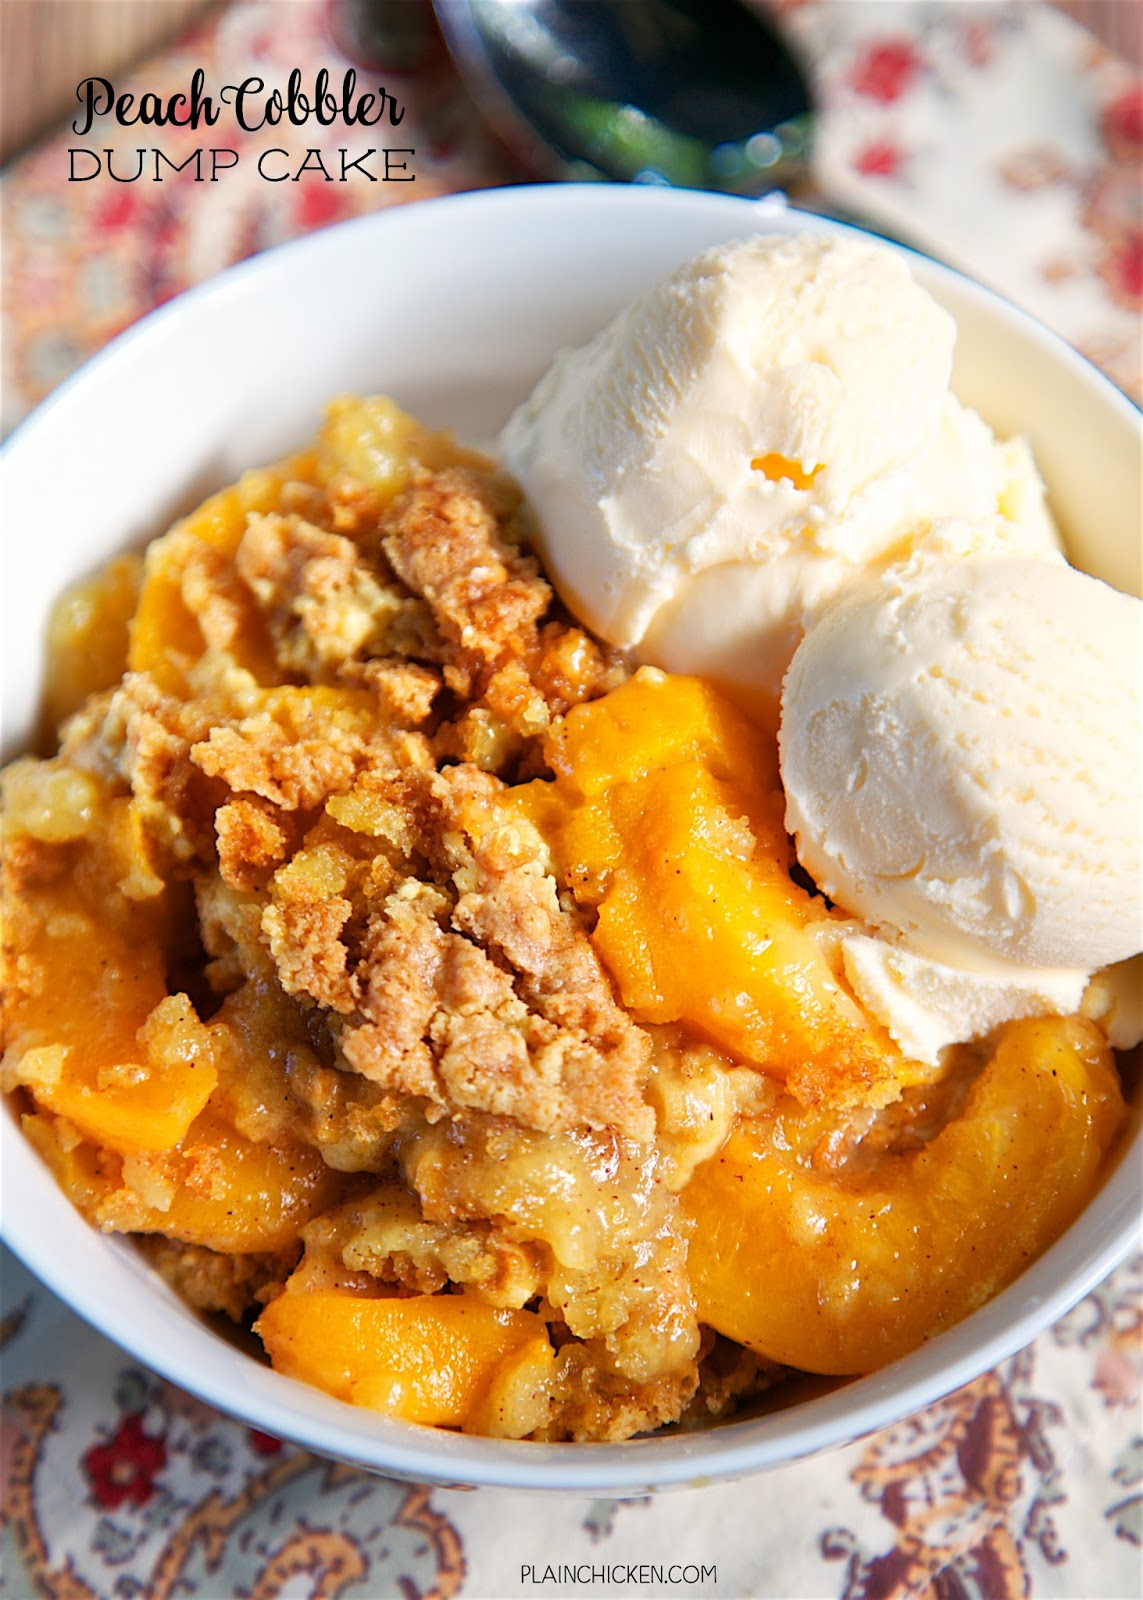 Peach Cobbler Dump Cake - only 4 ingredients for the most delicious dessert ever! LOVE this!!! Literally takes a minute to make and everyone loved it. There were no leftovers! Serve warm with some vanilla ice cream. YUM!